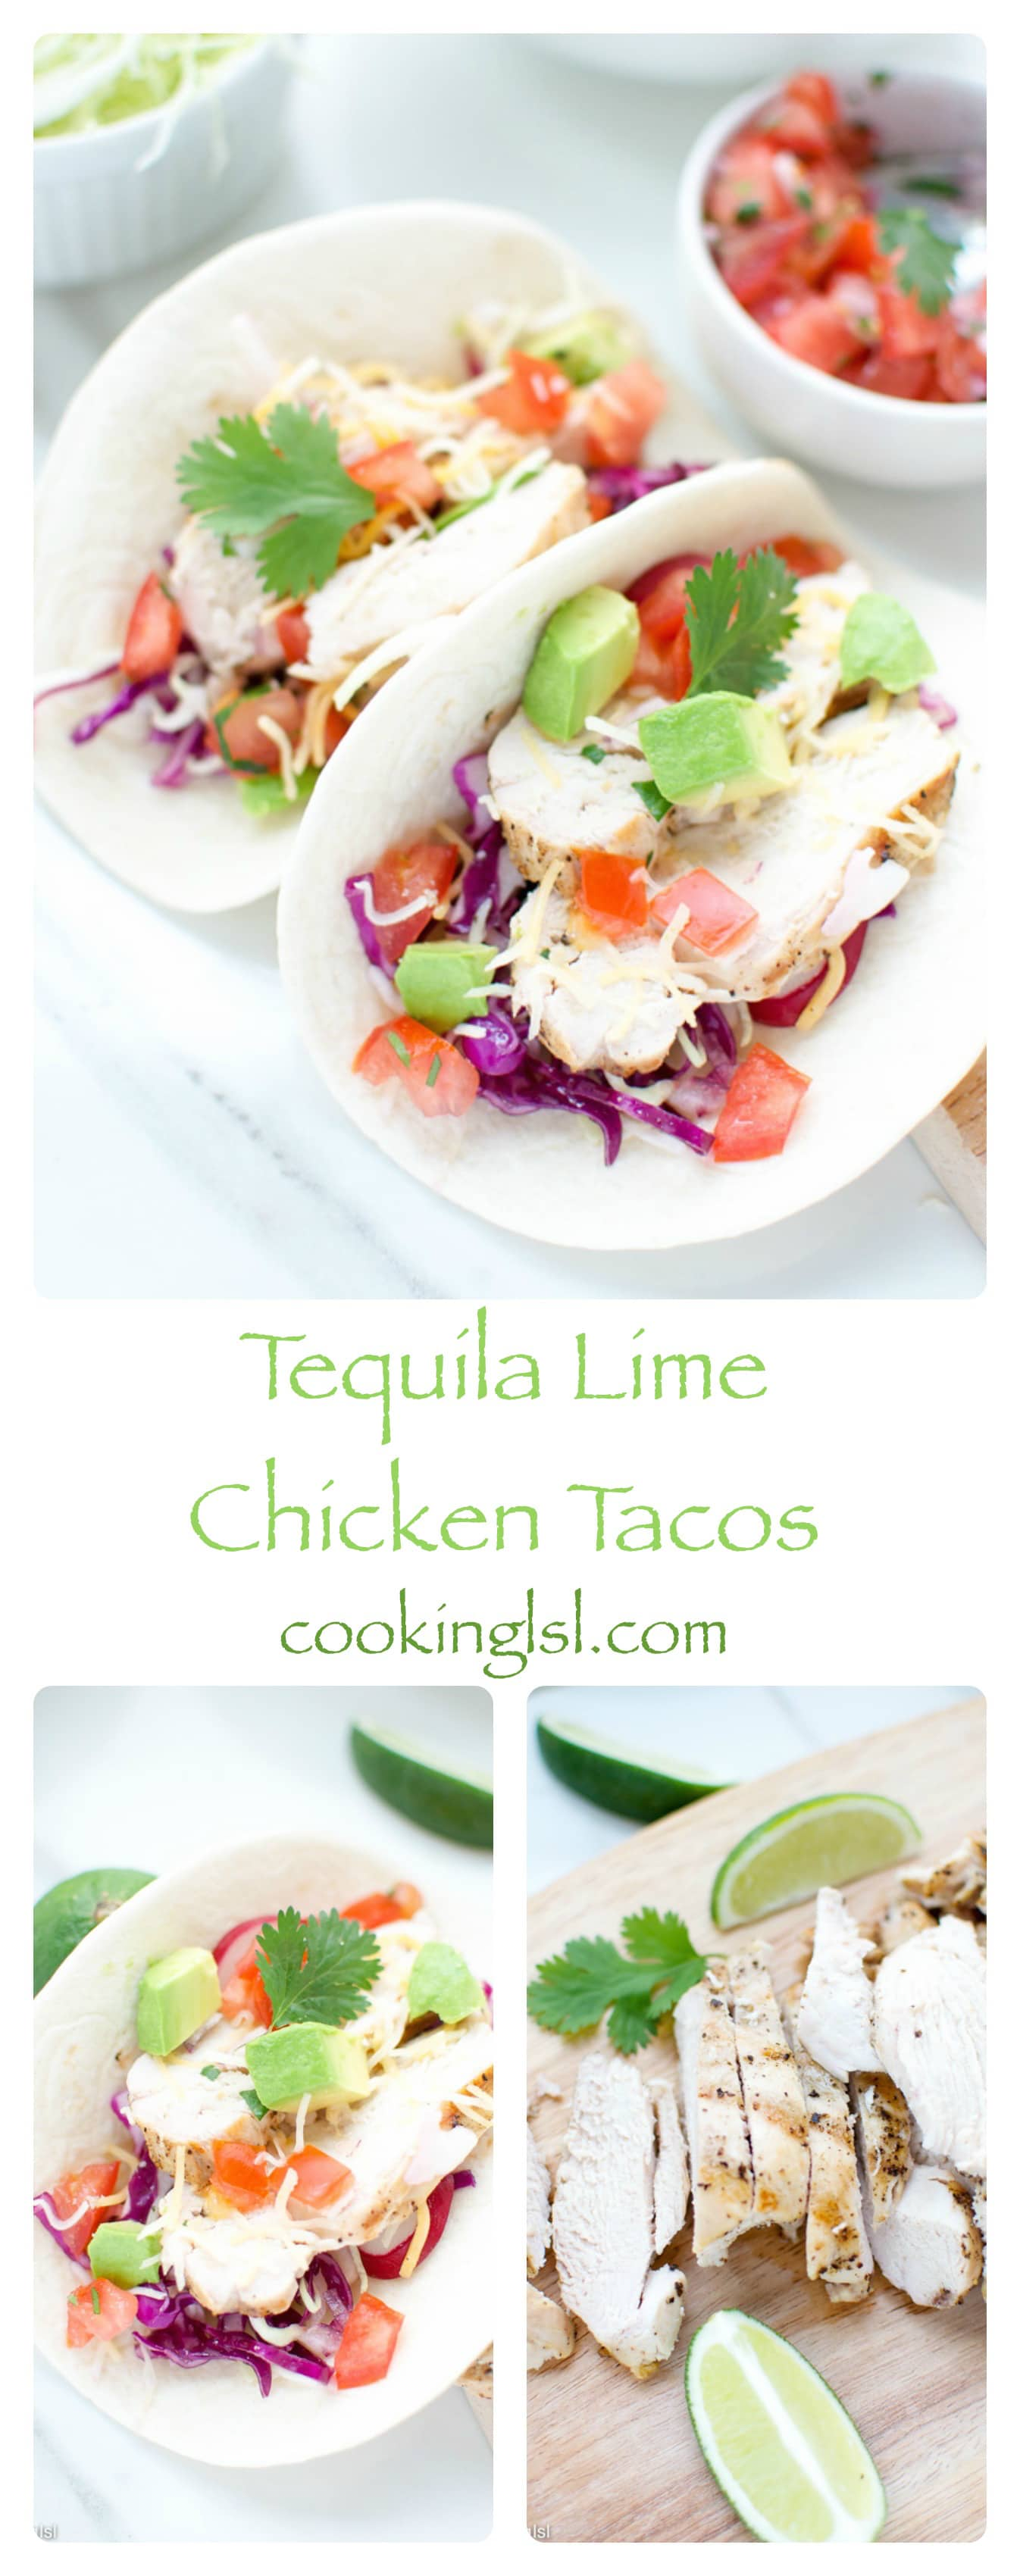 tequila-lime-marinated-chicken-tacos-recipe